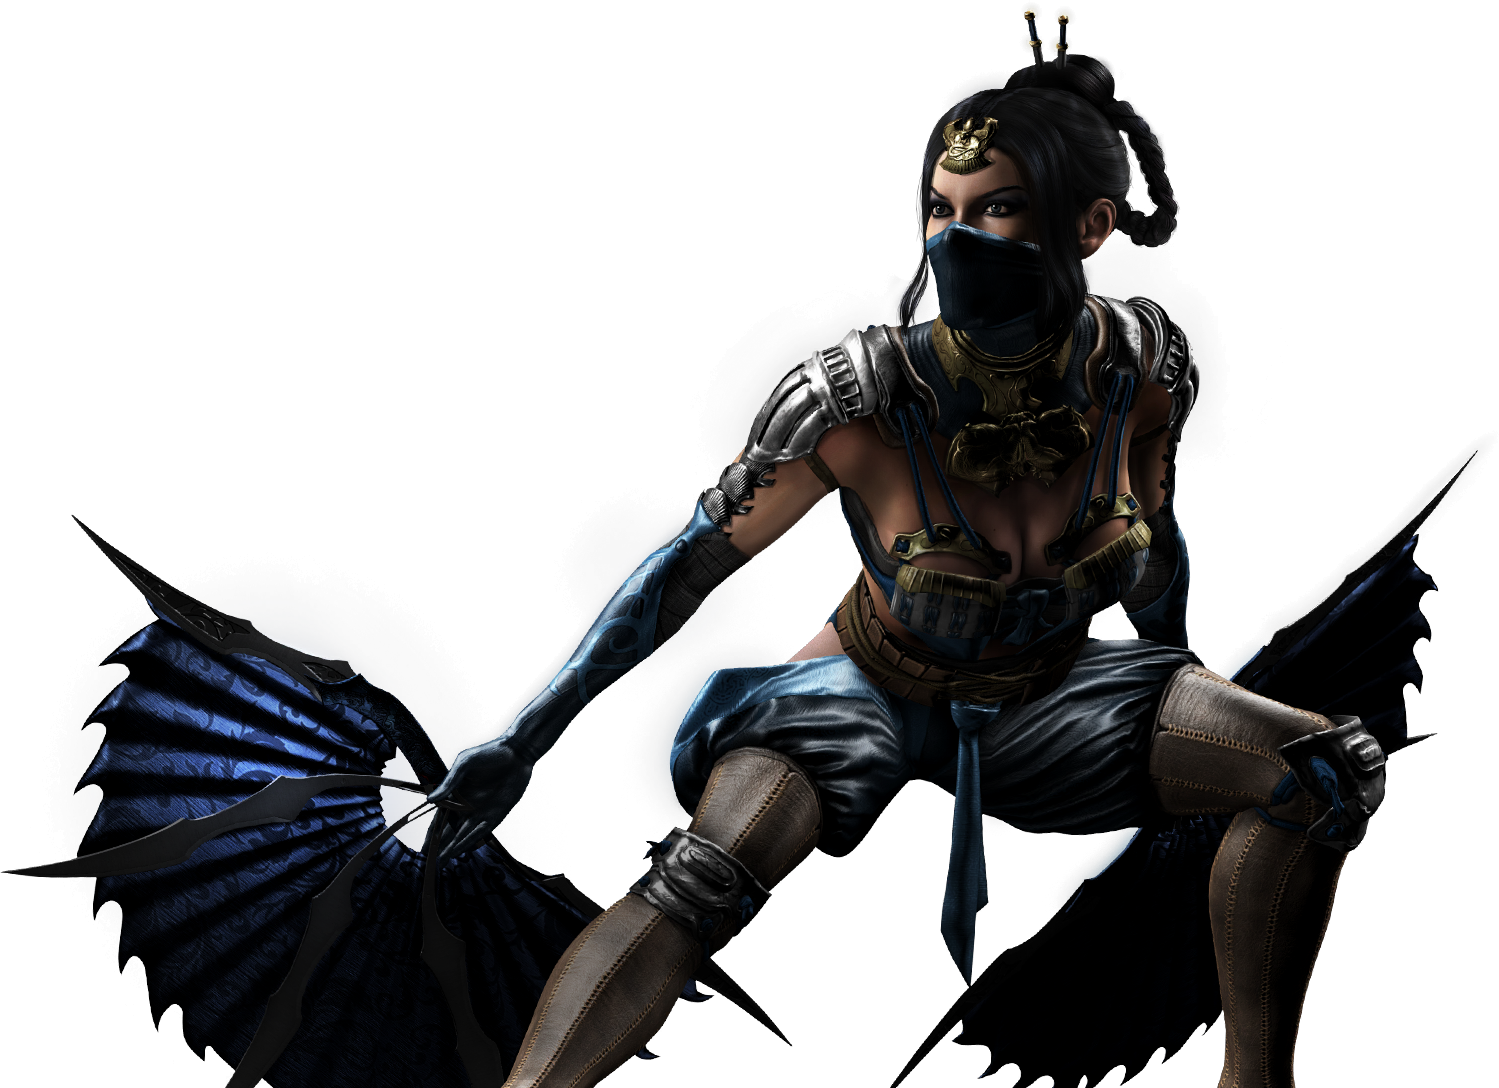 Kitana drawing war fan. Image mkx render not